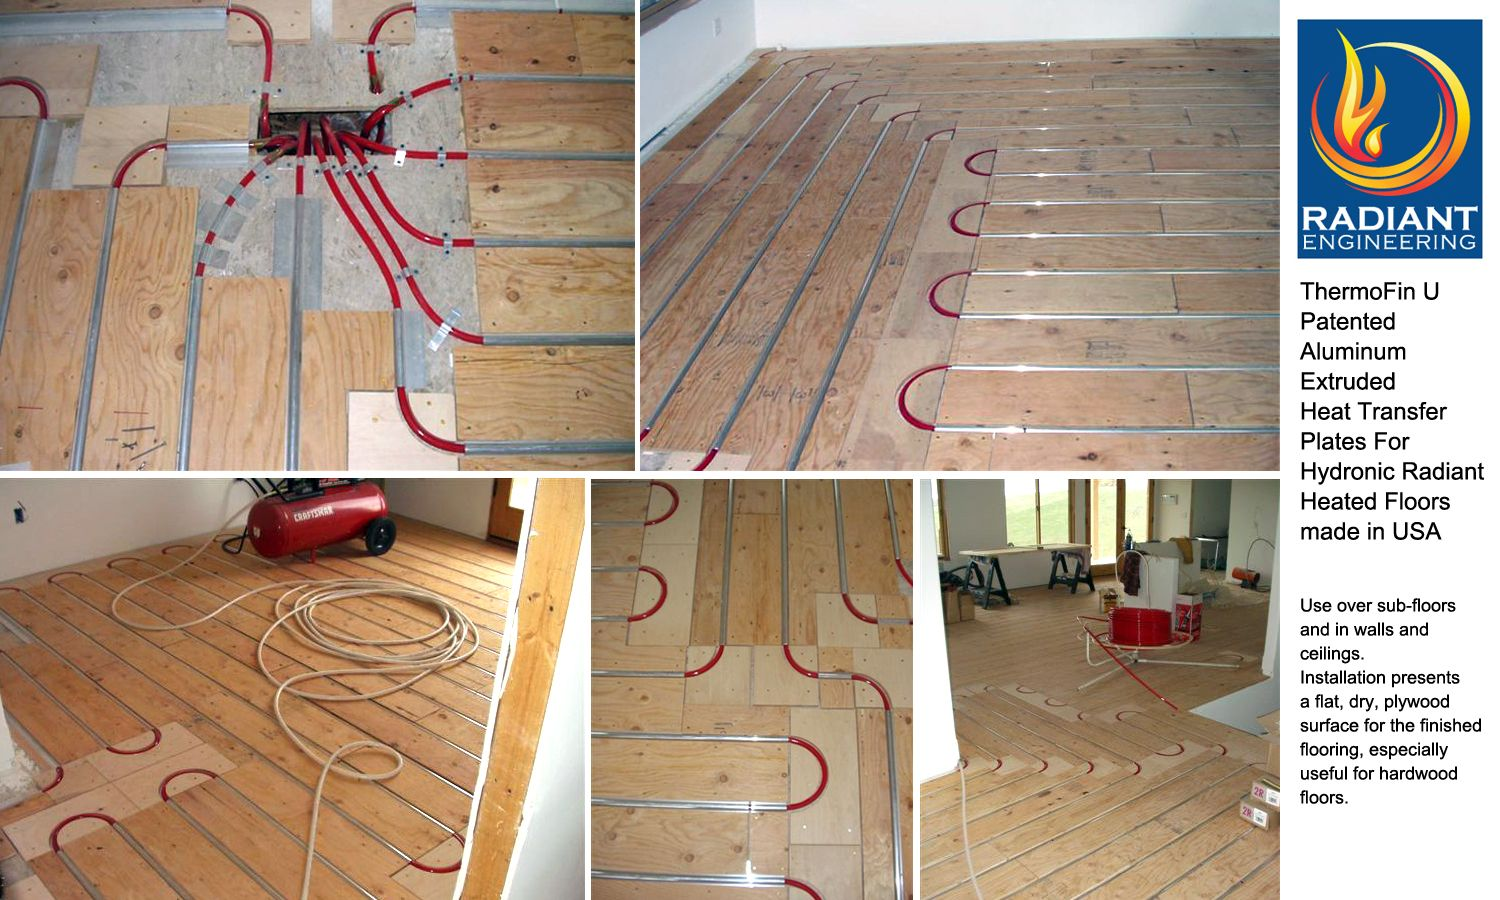 Free Samples Of Thermofin At Www Radiantengineering Com Contact Heated Floors Using Thermofin High E Radiant Floor Heating Radiant Heat Hydronic Radiant Heat